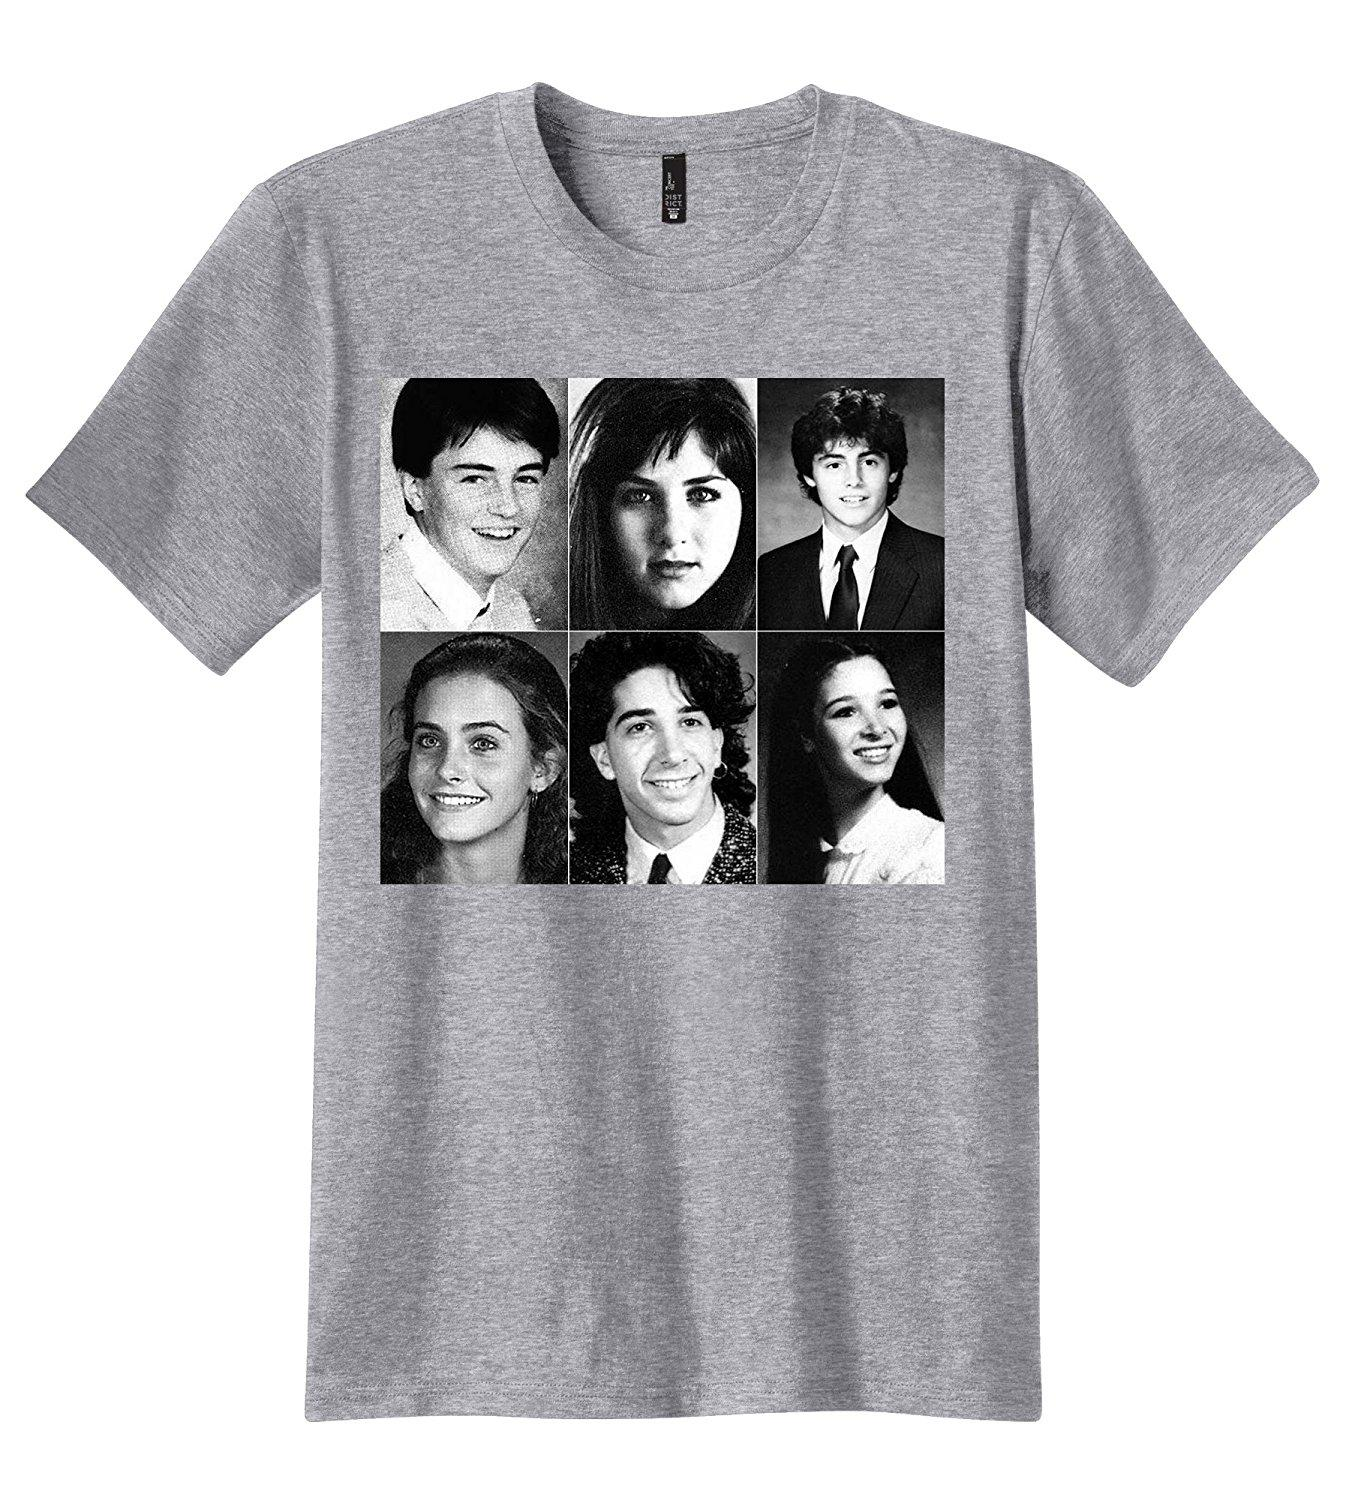 c25c7e8b5 PubliciTeeZ Friends Cast Yearbook Picture T Shirt Cartoon T Shirts Urban T  Shirts From Spreadshirtinc, $11.01| DHgate.Com